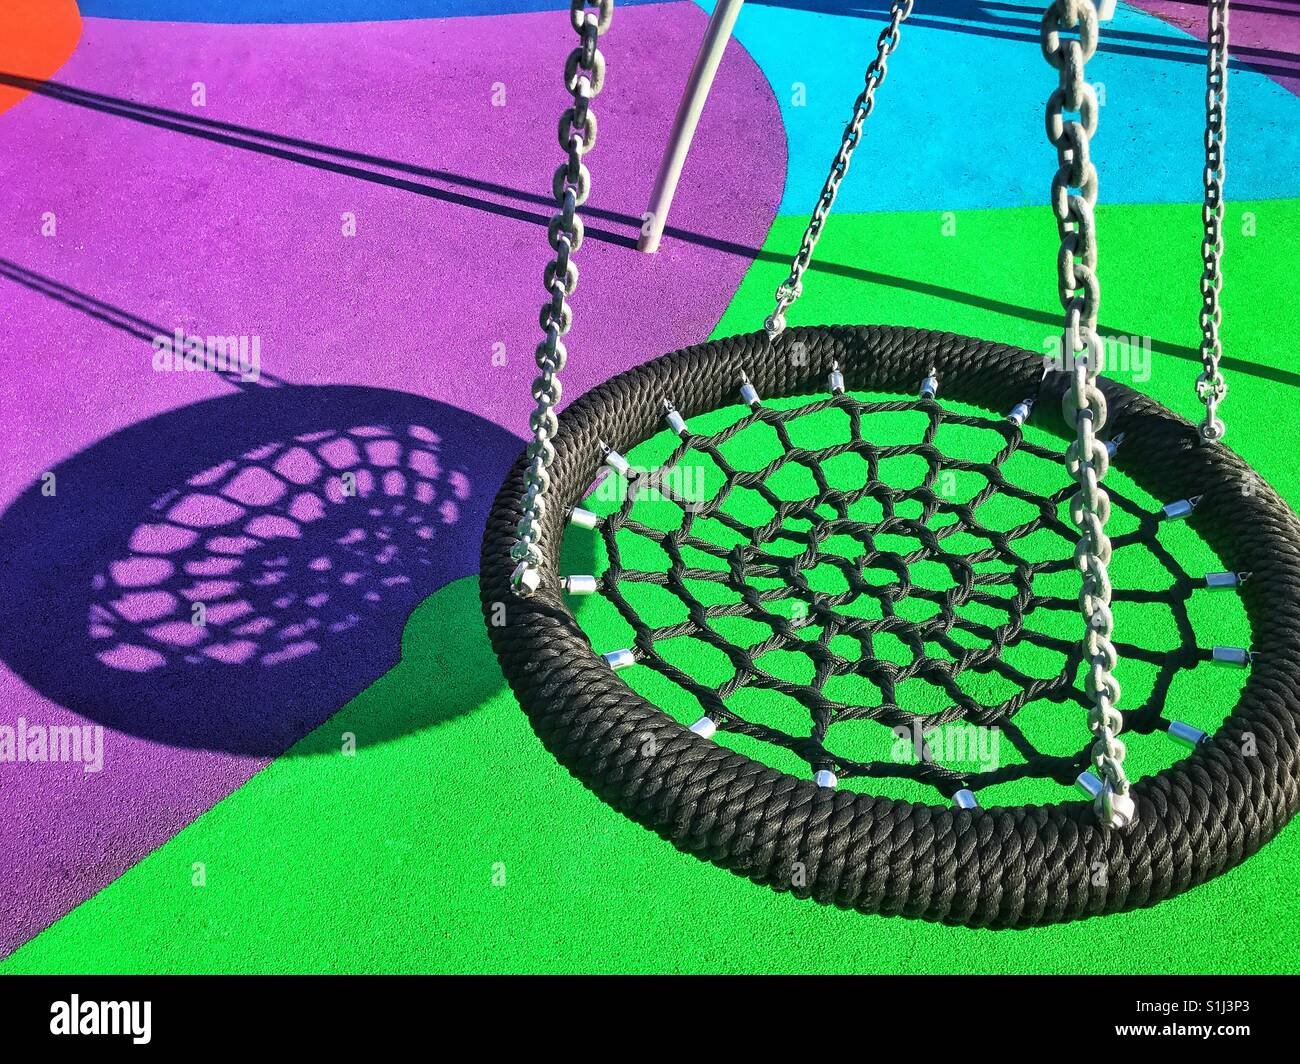 A children's swing hangs silently in a new & colourful playground area. It's a summer's afternoon - Stock Image